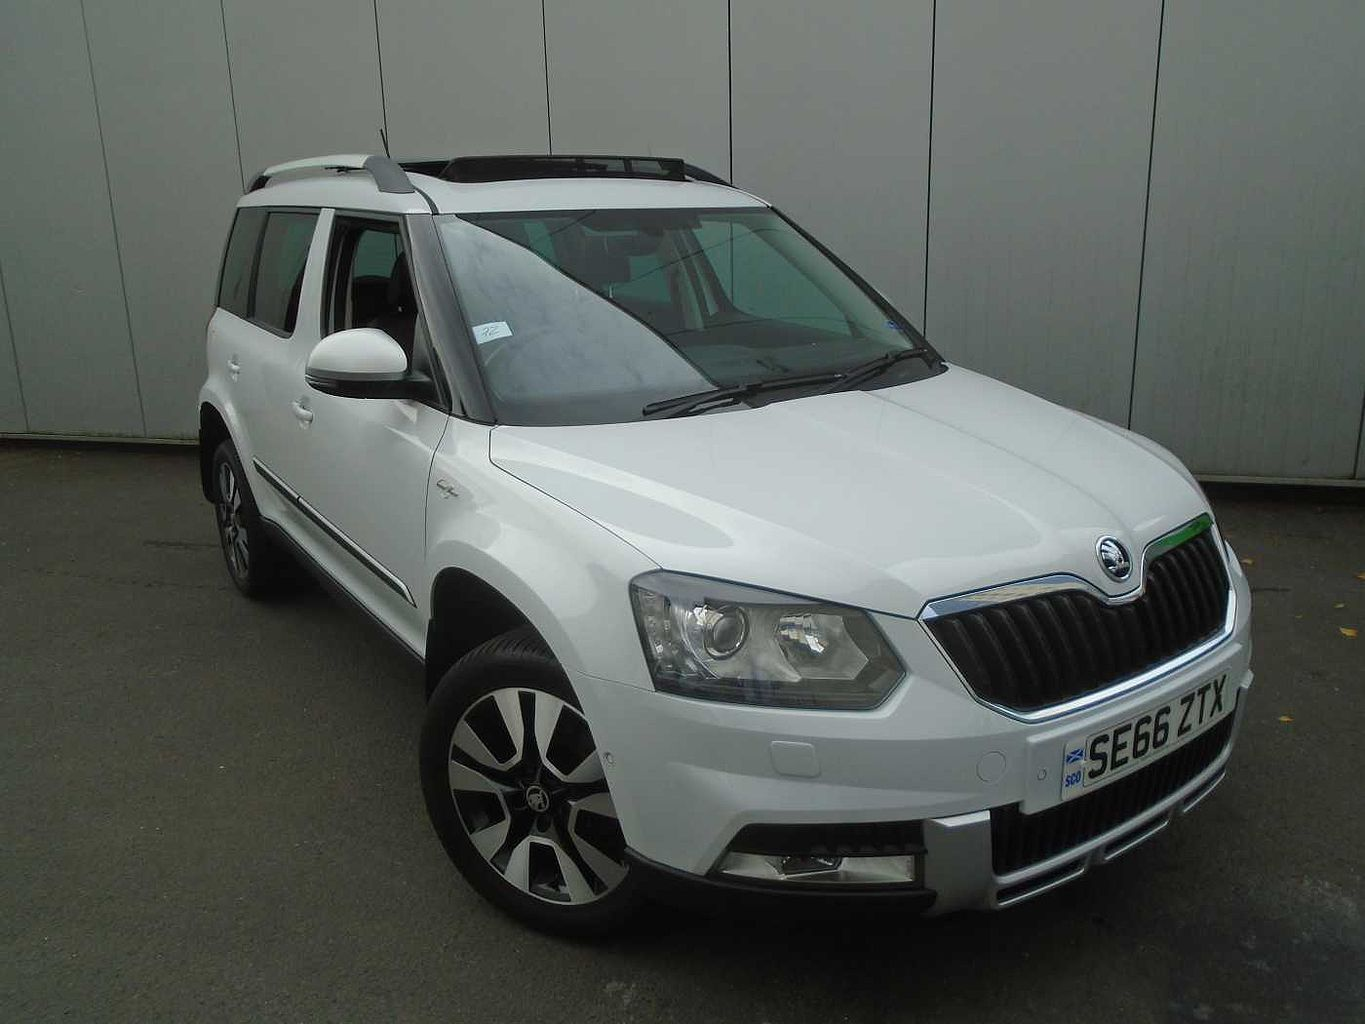 ŠKODA Yeti 2.0TDI SCR 4X4 Laurin&Klement Outdoor DSG